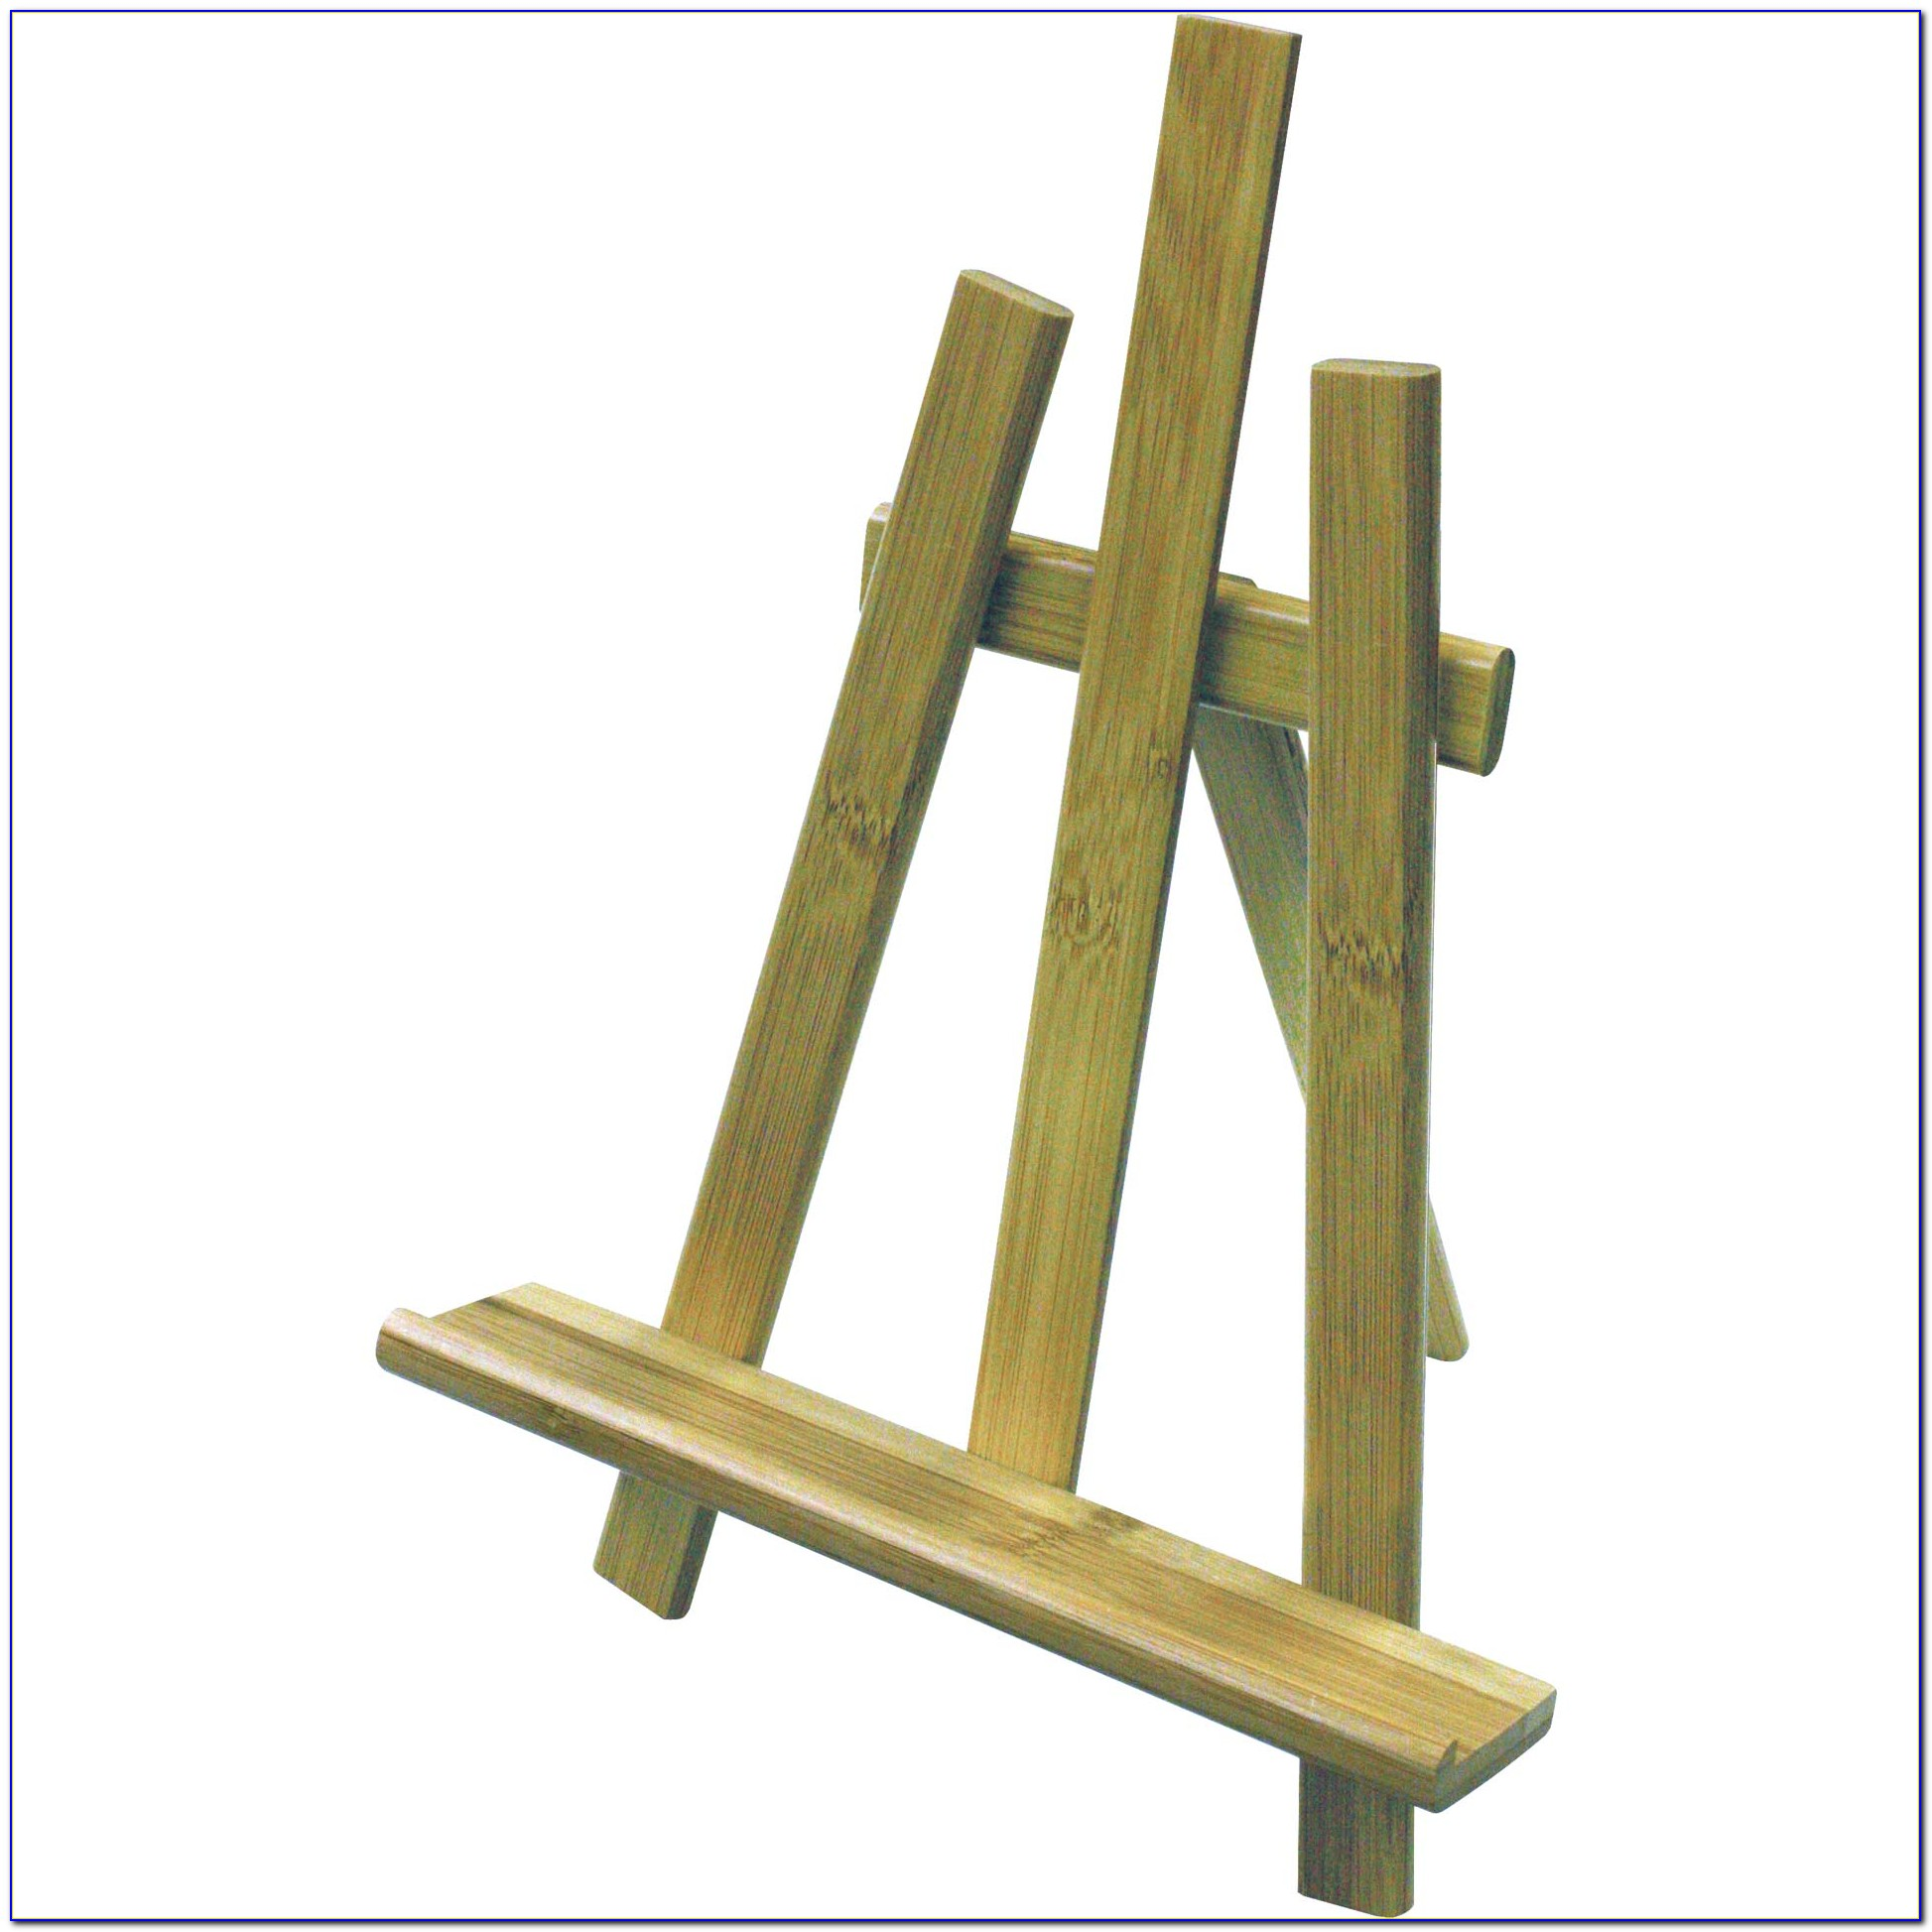 Decorative Tabletop Display Easels